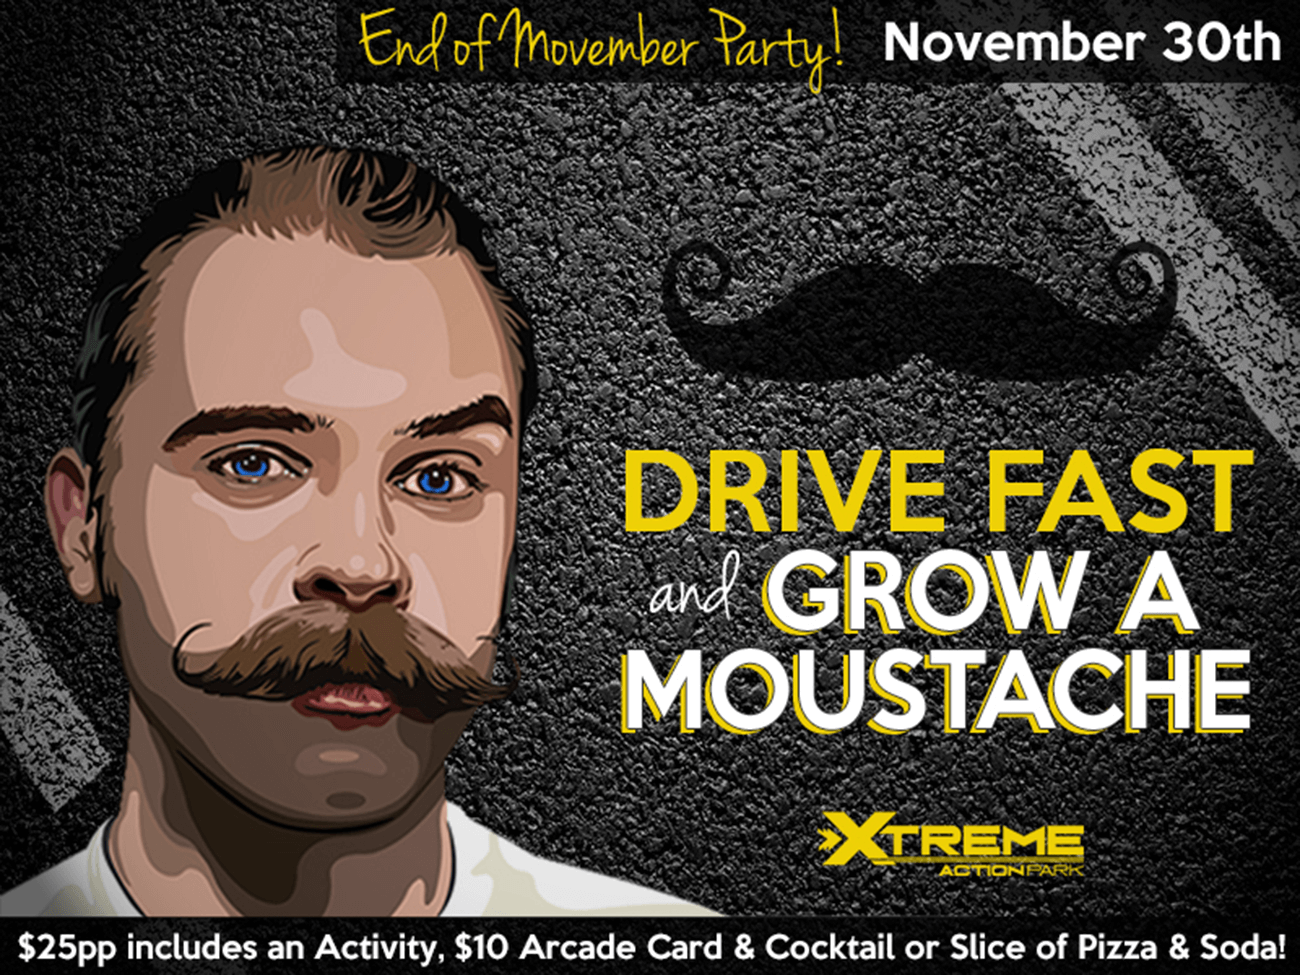 End of Movember Party!